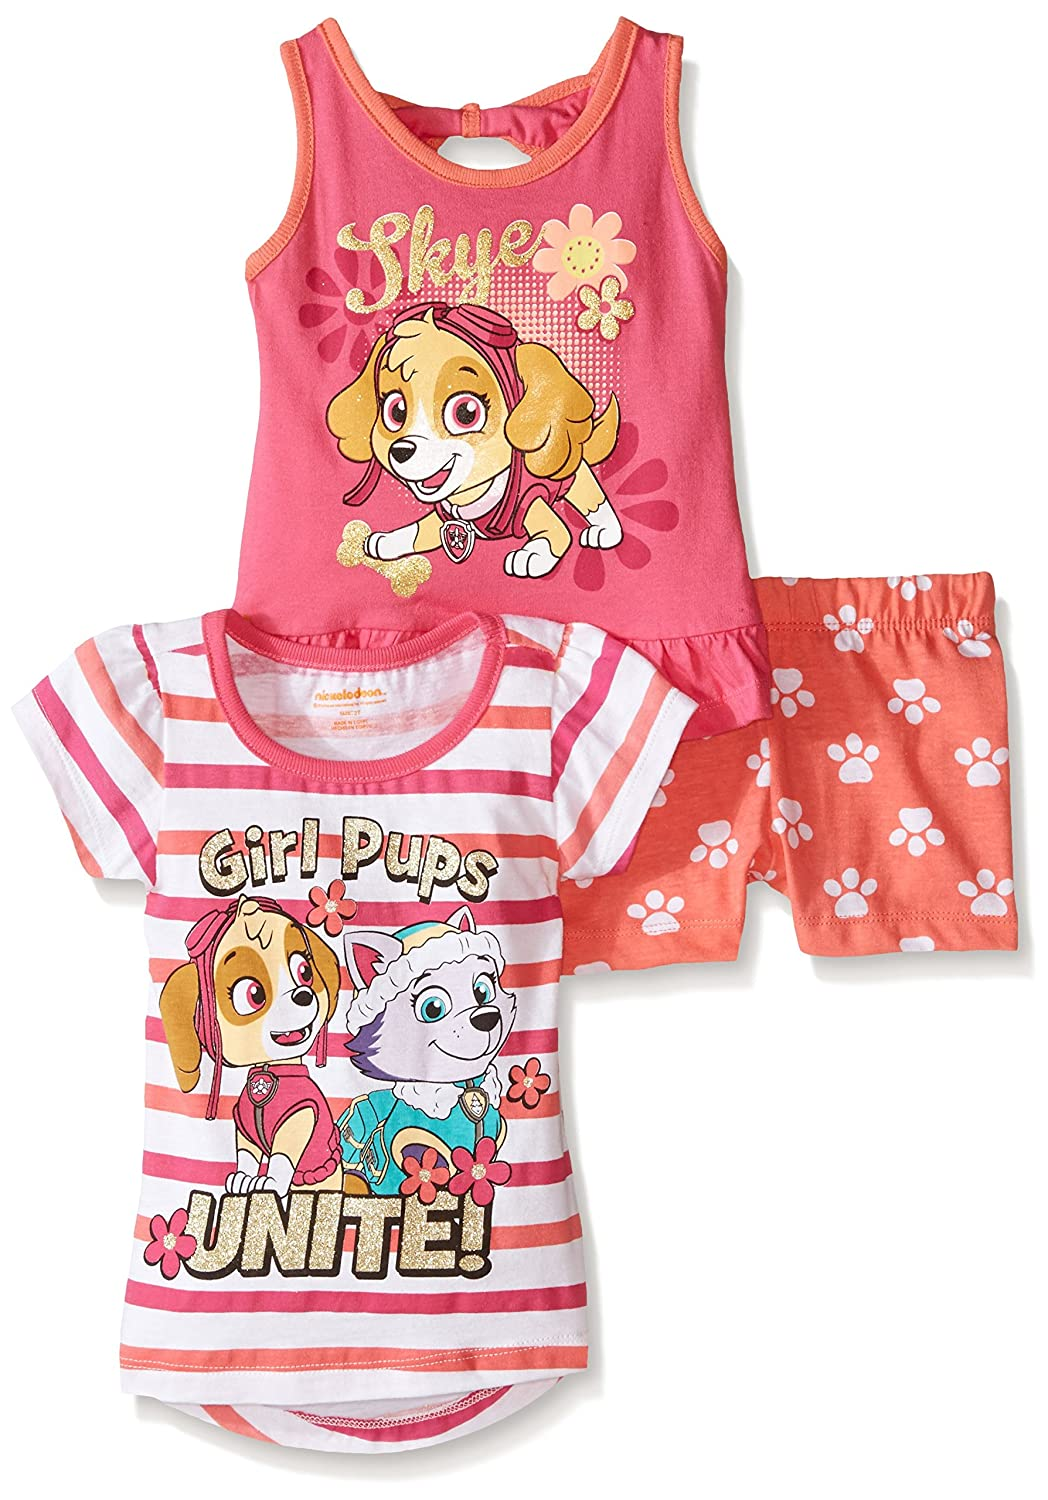 Paw Patrol  Baby Girls' 3pc Top and Short Set, Pink, 12 Months CAN Character Children' s Apparel 4nw5719